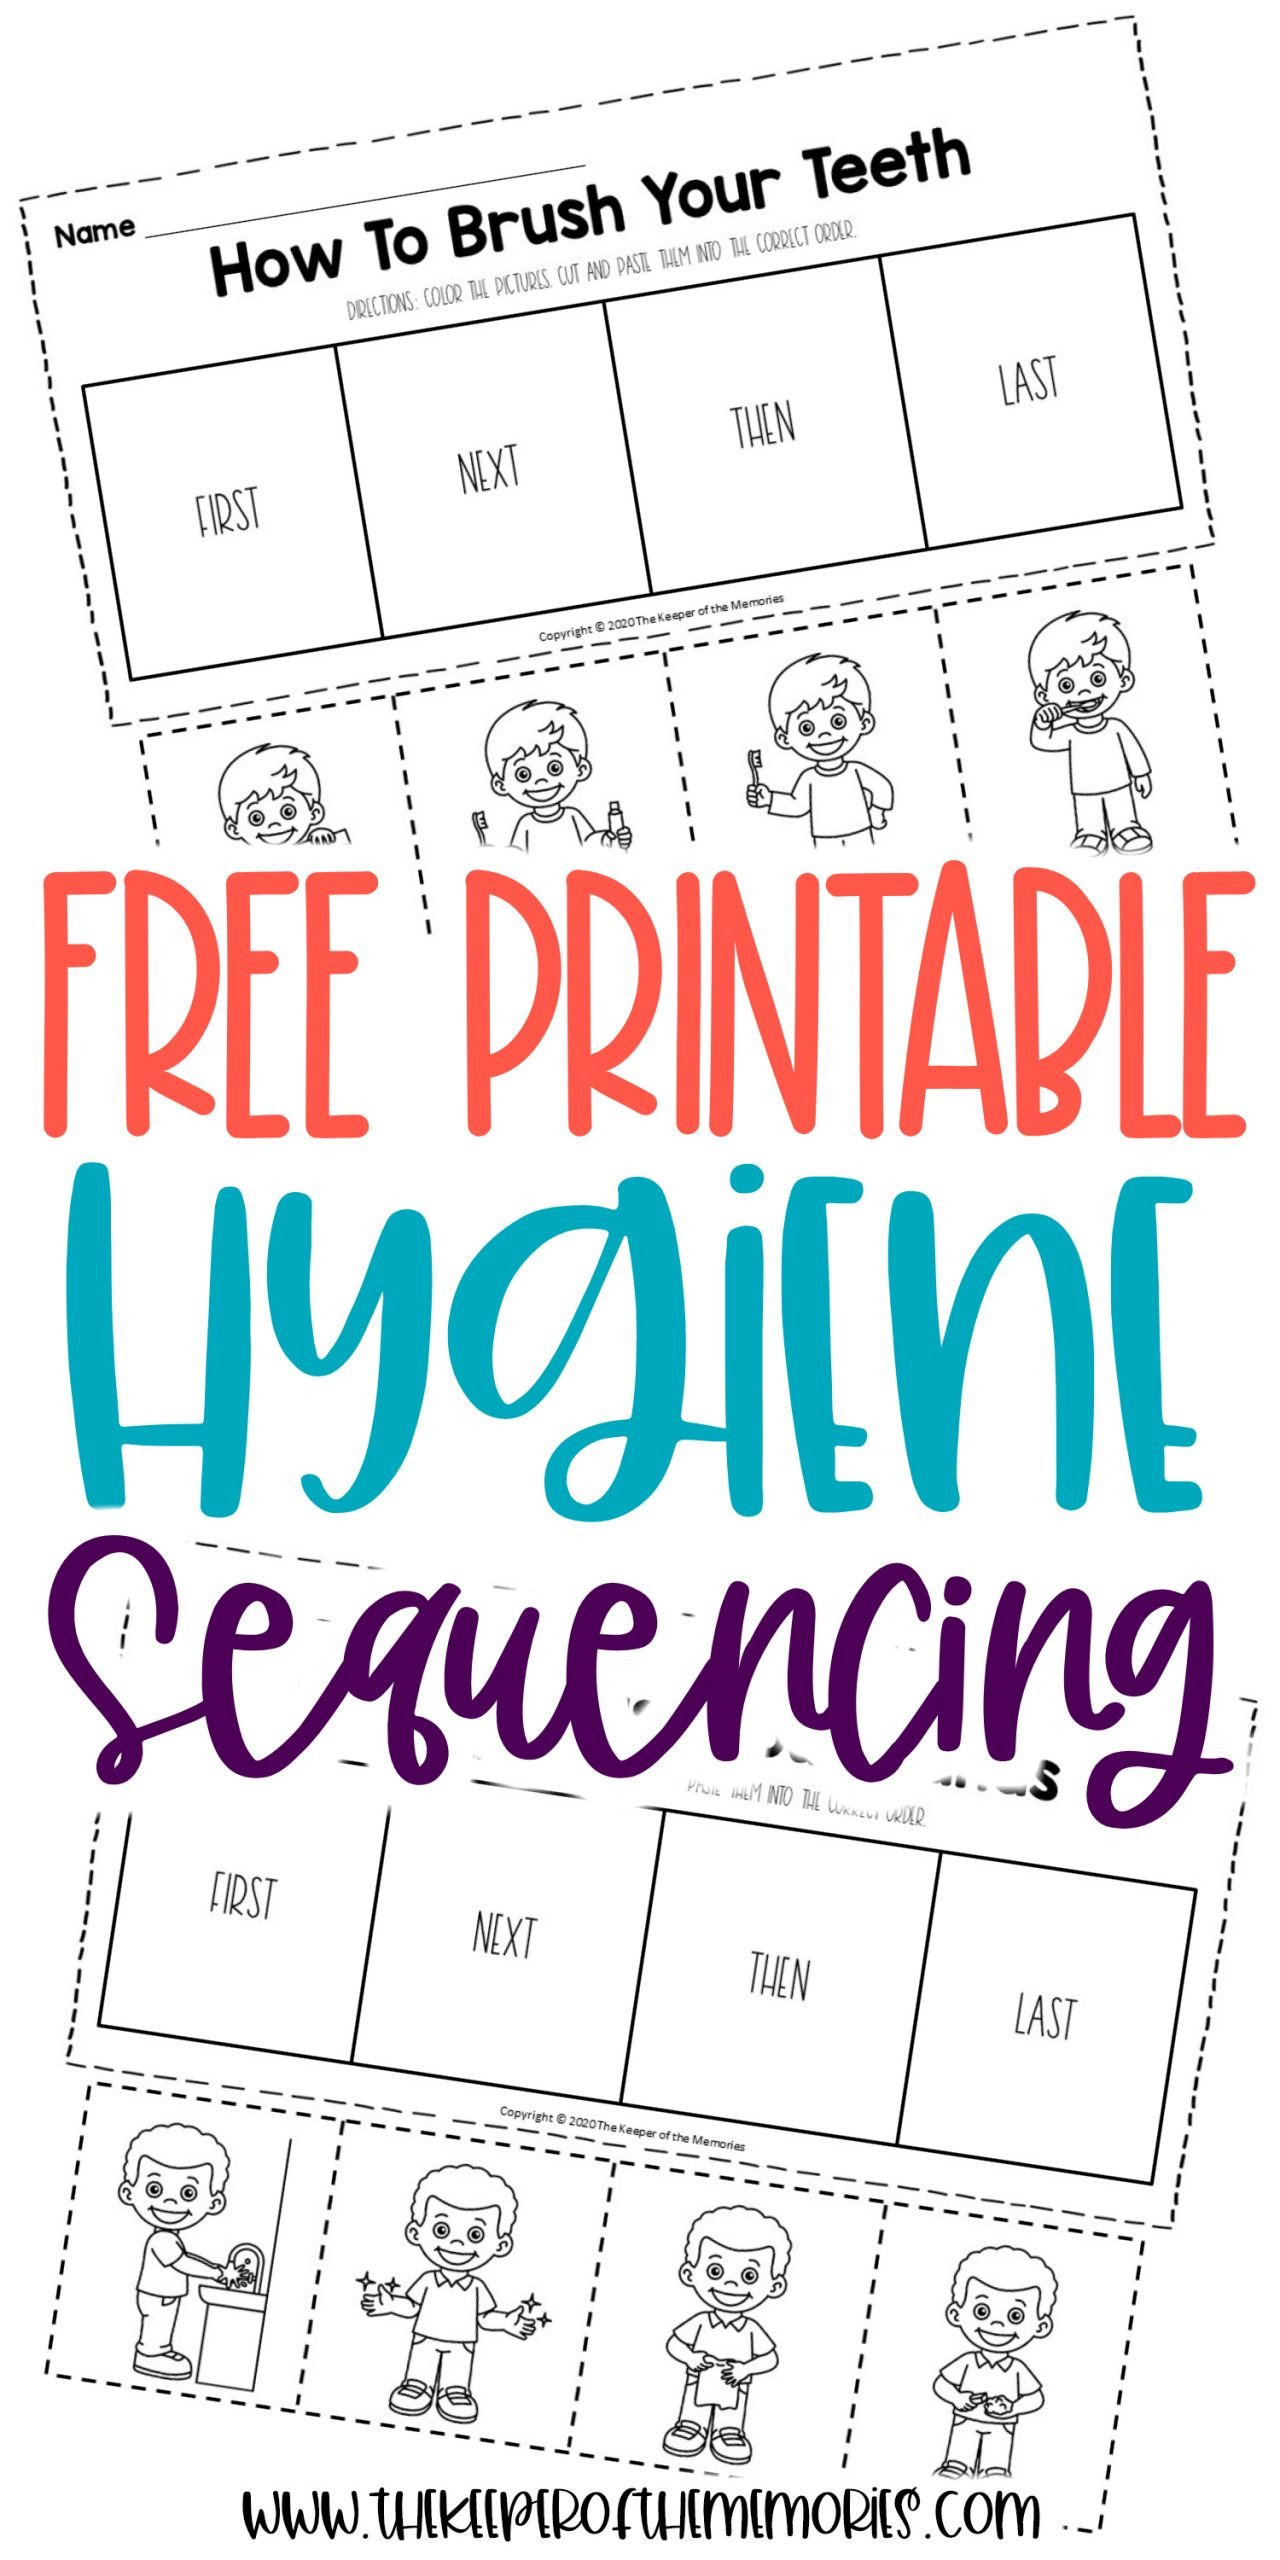 Free Printable Sequencing Worksheets Free Printable Preschool Sequencing Worksheets